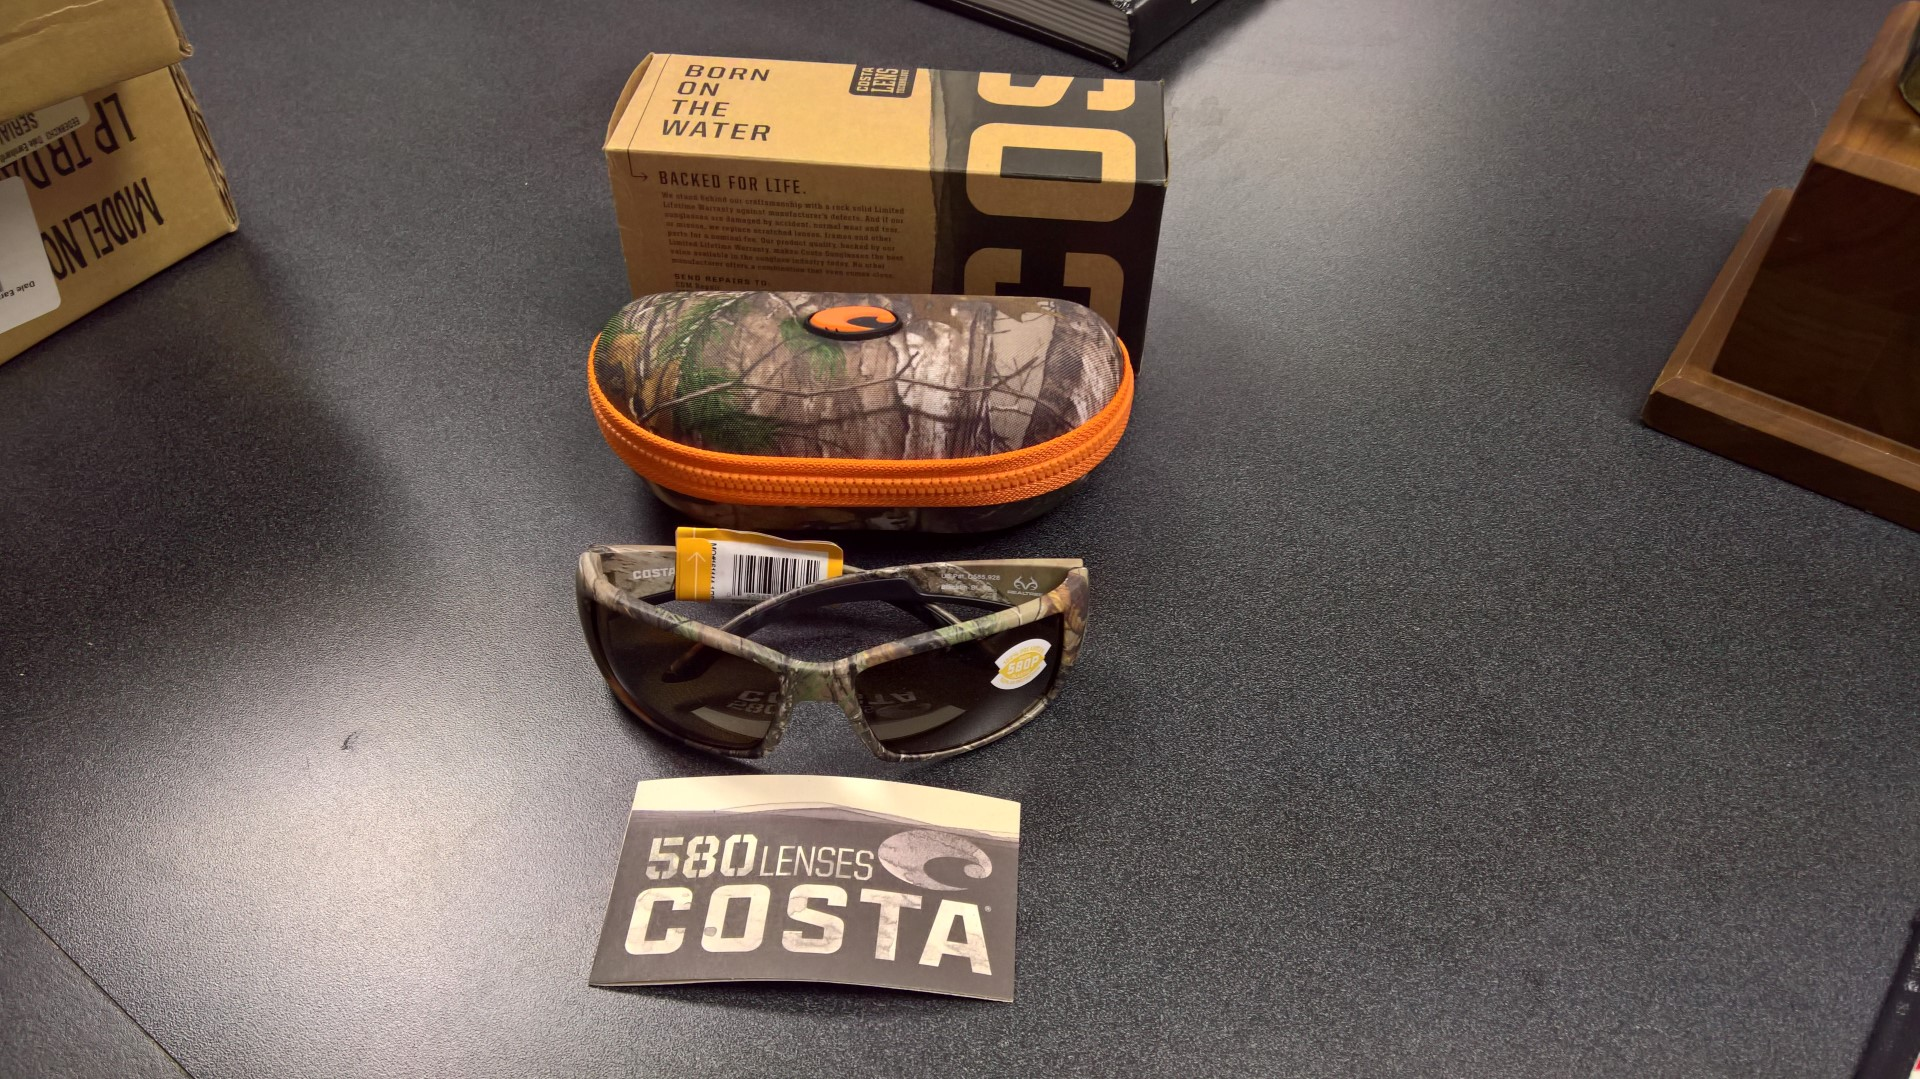 Costa 580 Lenses